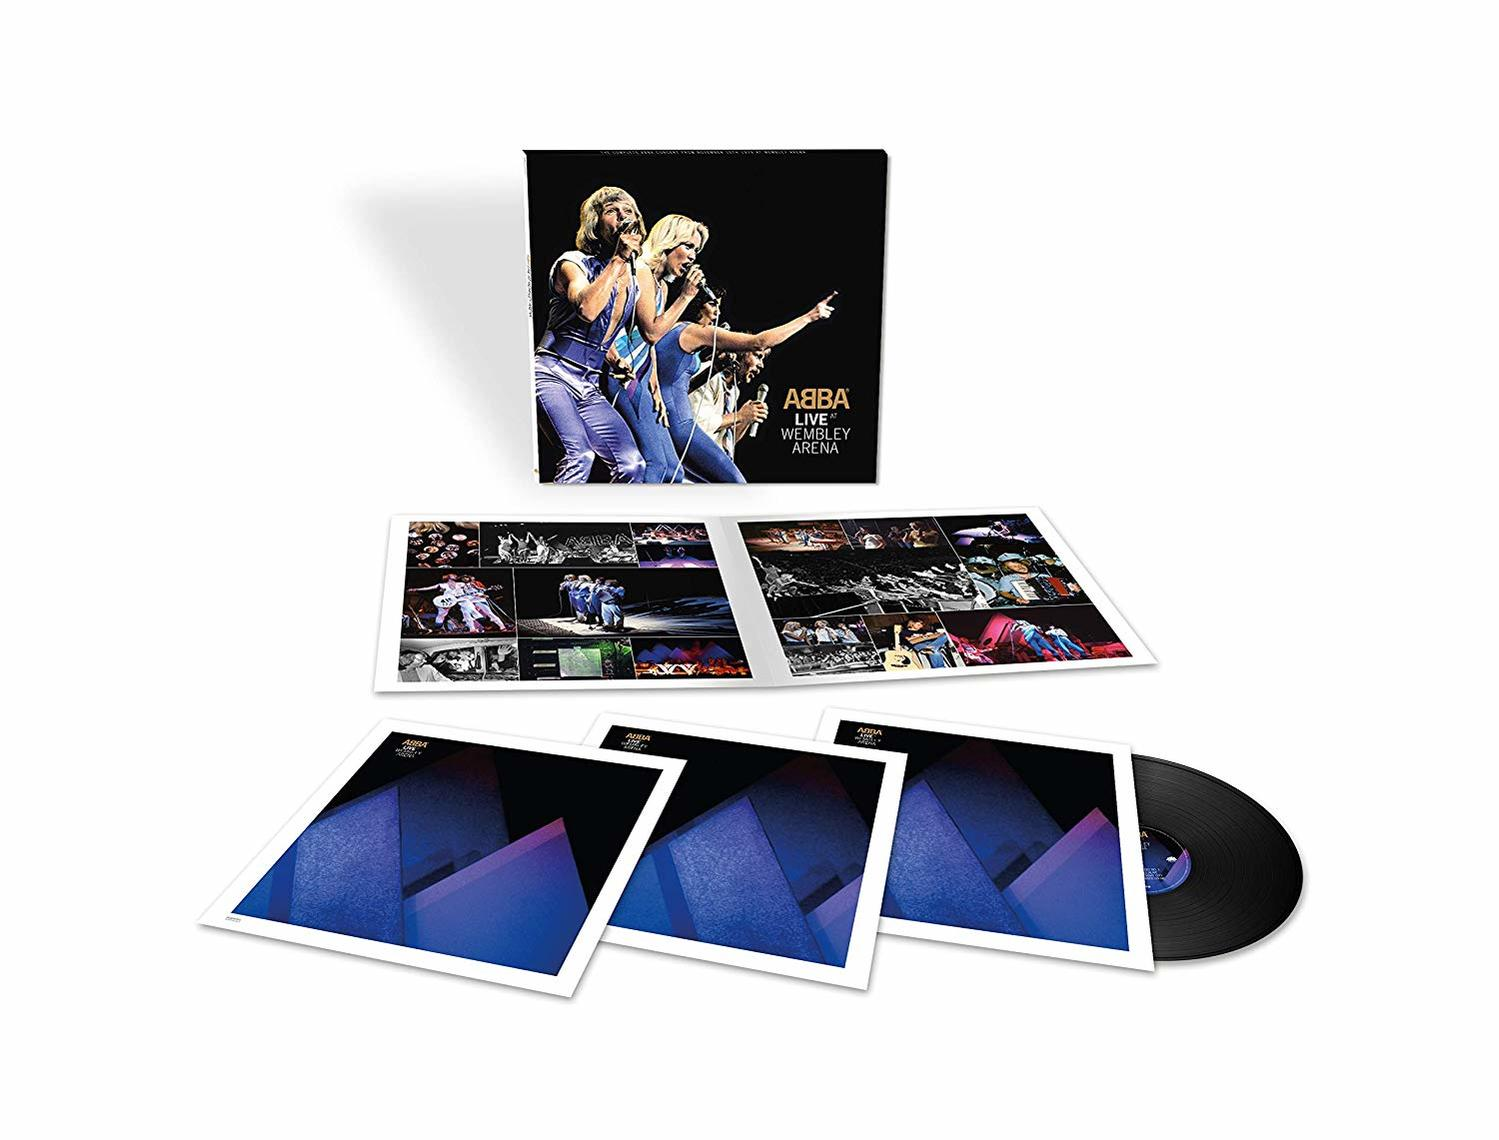 LIVE AT WEMBLEY ARENA (3LP)